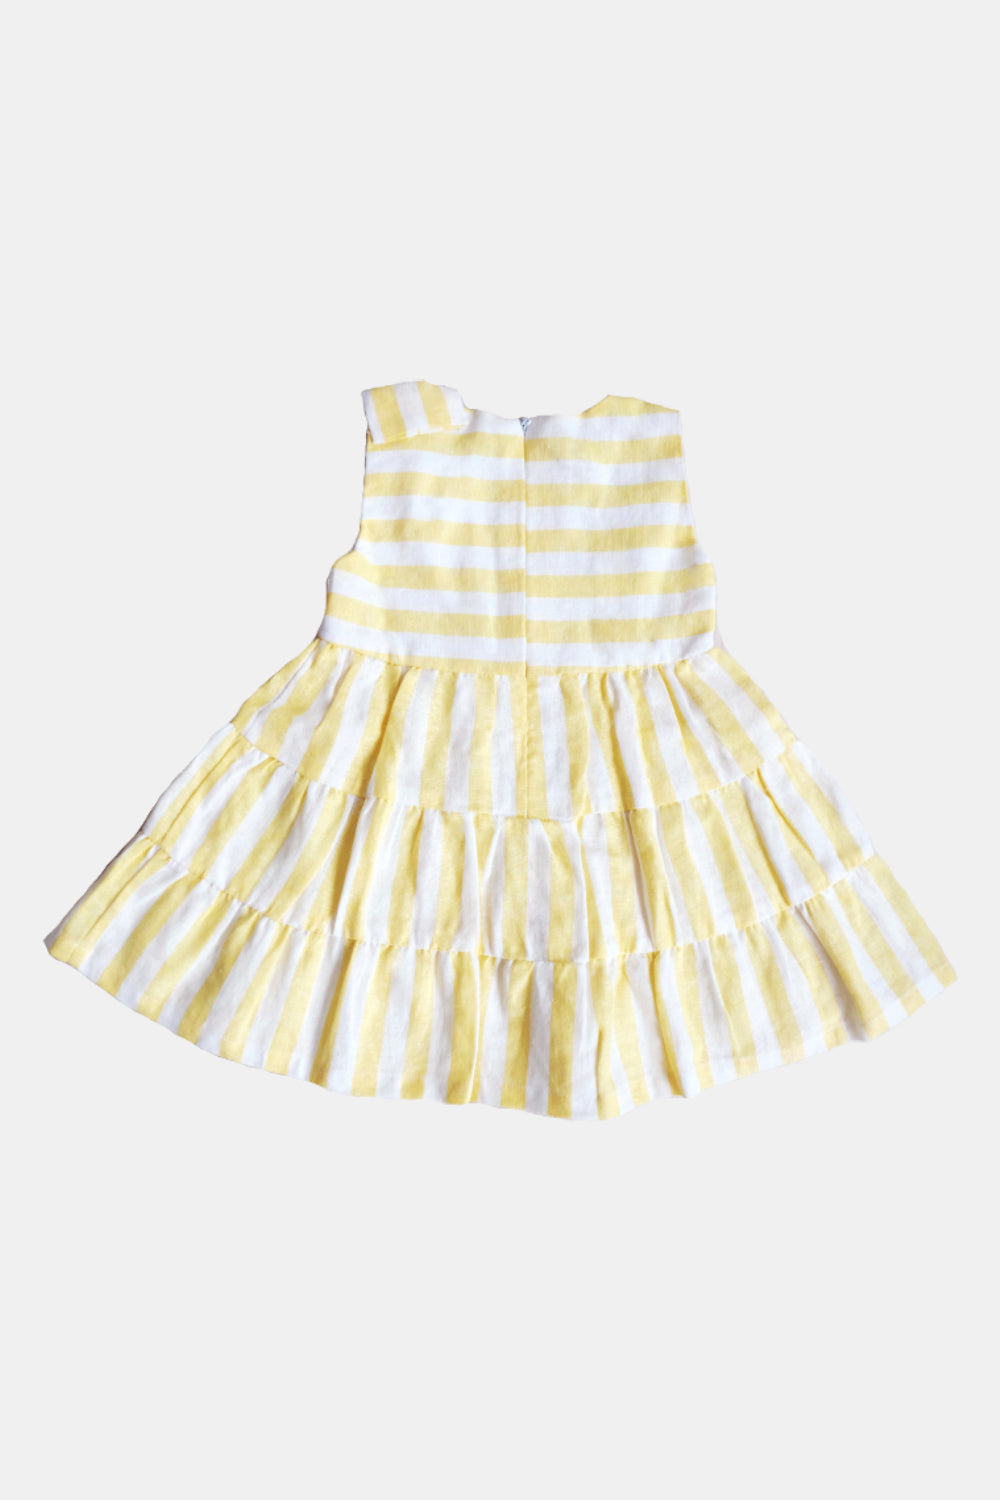 Sunny Dress in White Yellow